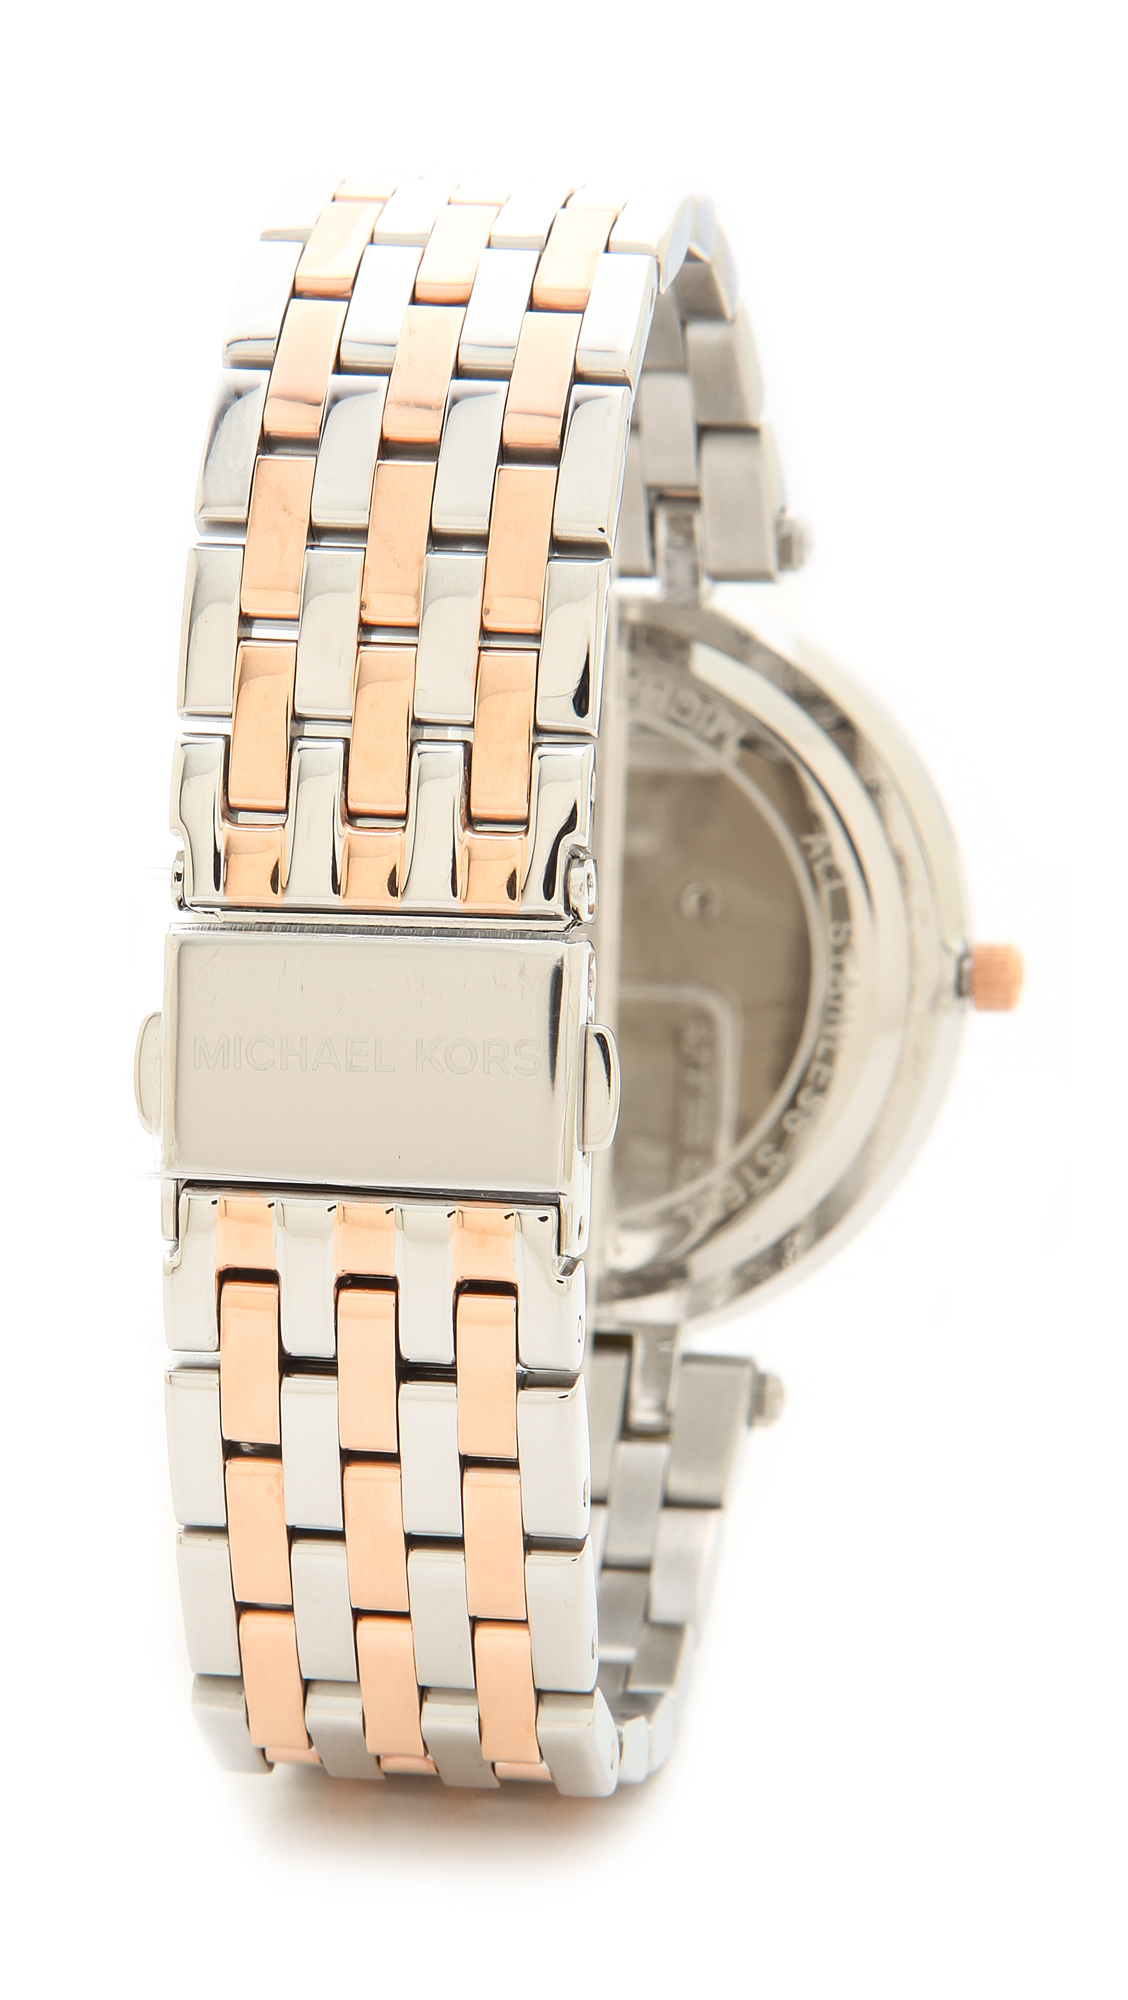 29b0ae657cce4 Michael Kors Darci Watch - Silver Rose Amethyst in Purple - Lyst